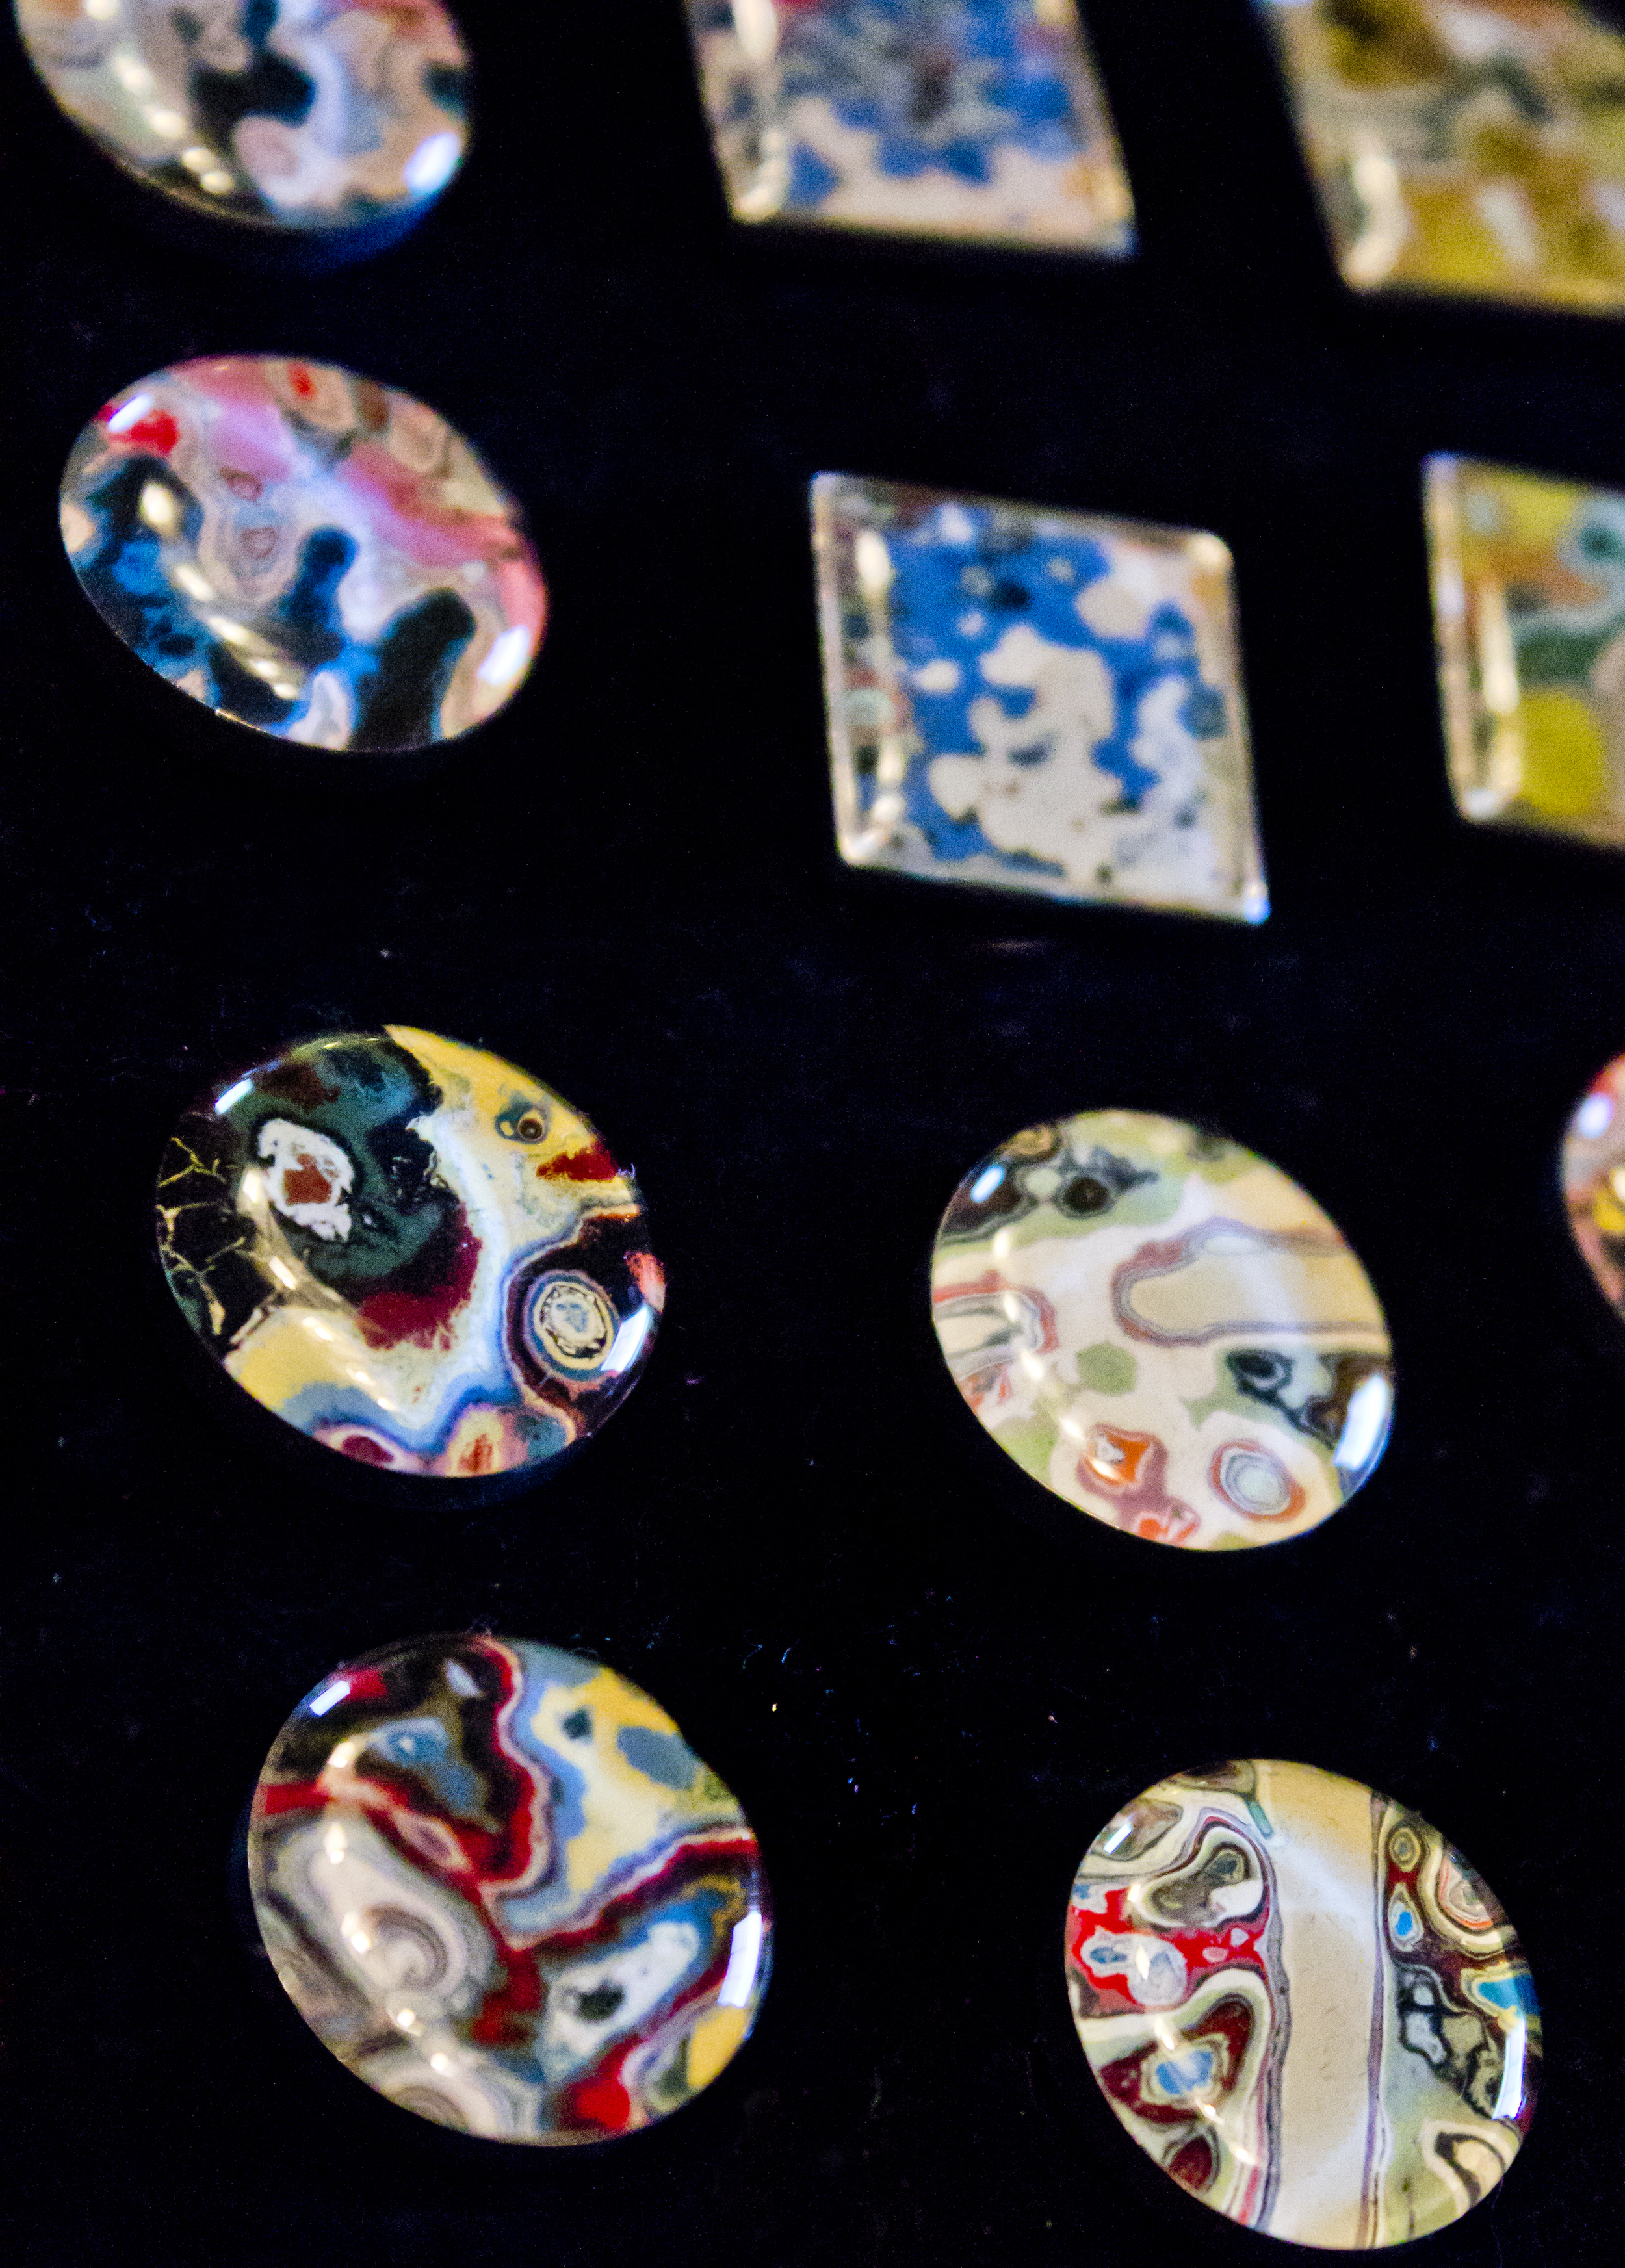 Cuff-links made out of shards of re-purposed graffiti. Photo by Amy Cooper